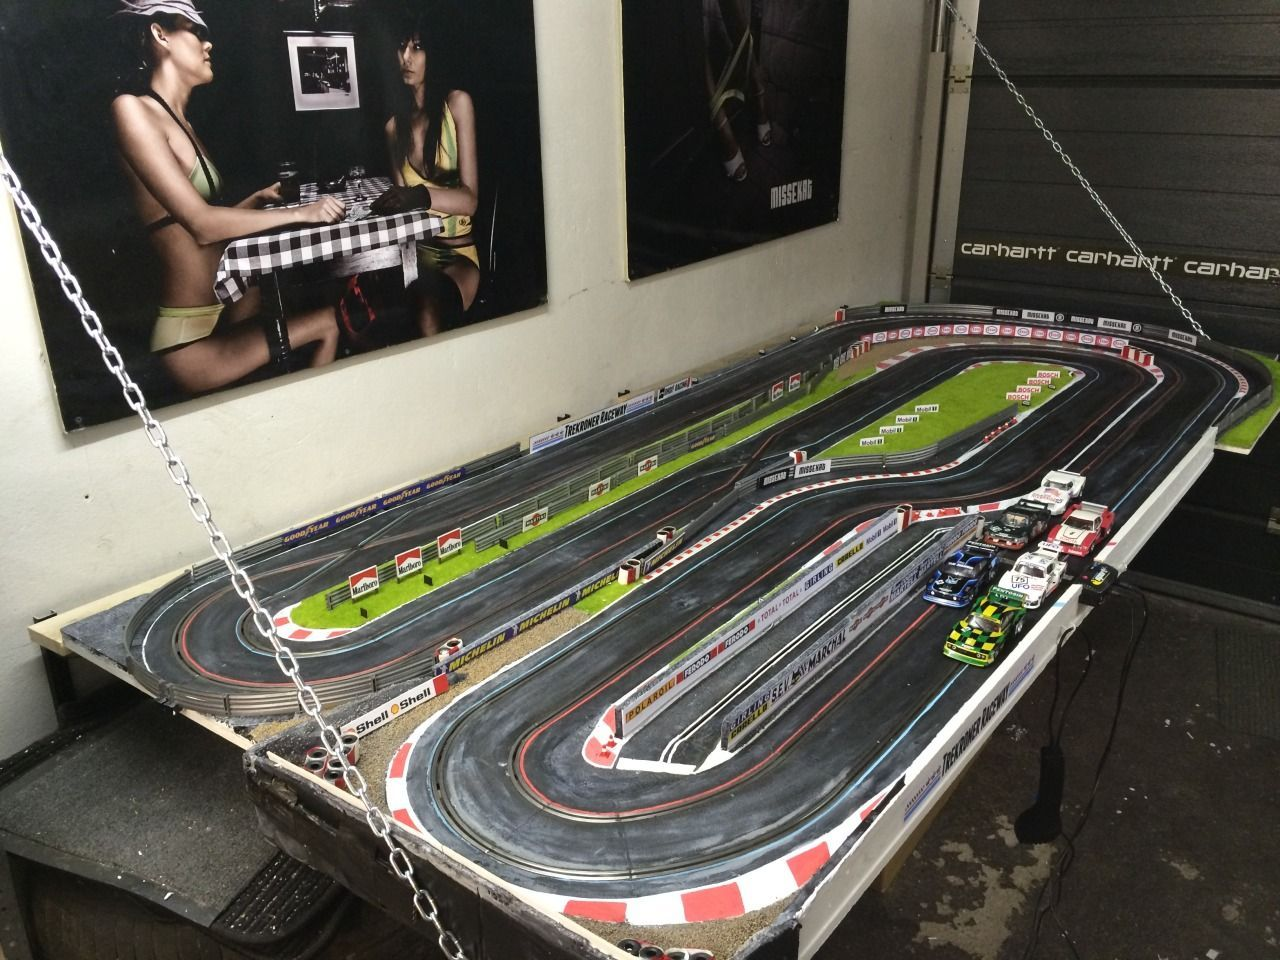 All About My Garage Slot Car Track And The Cars That Race It The Track Build The Cars Links Slot Cars Slot Car Tracks Slot Car Racing